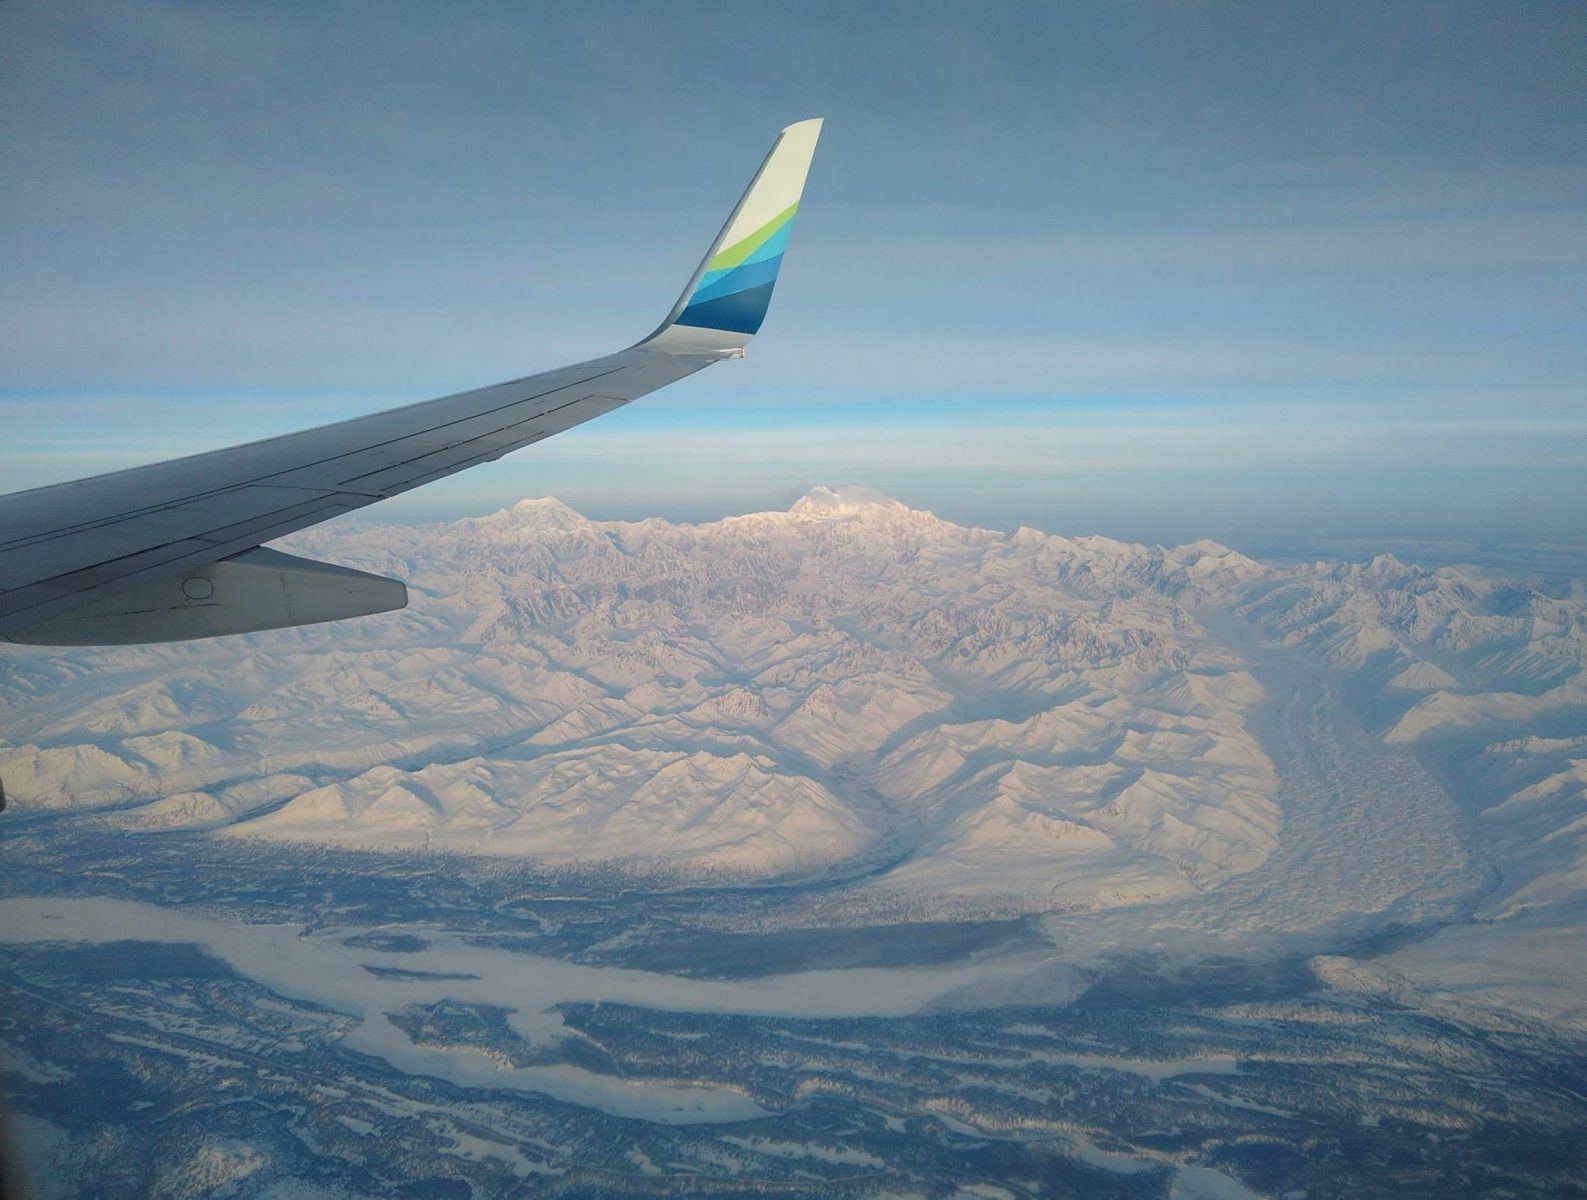 Denali National Park below the wing of an airplane. There are mountains, glaciers and a river valley